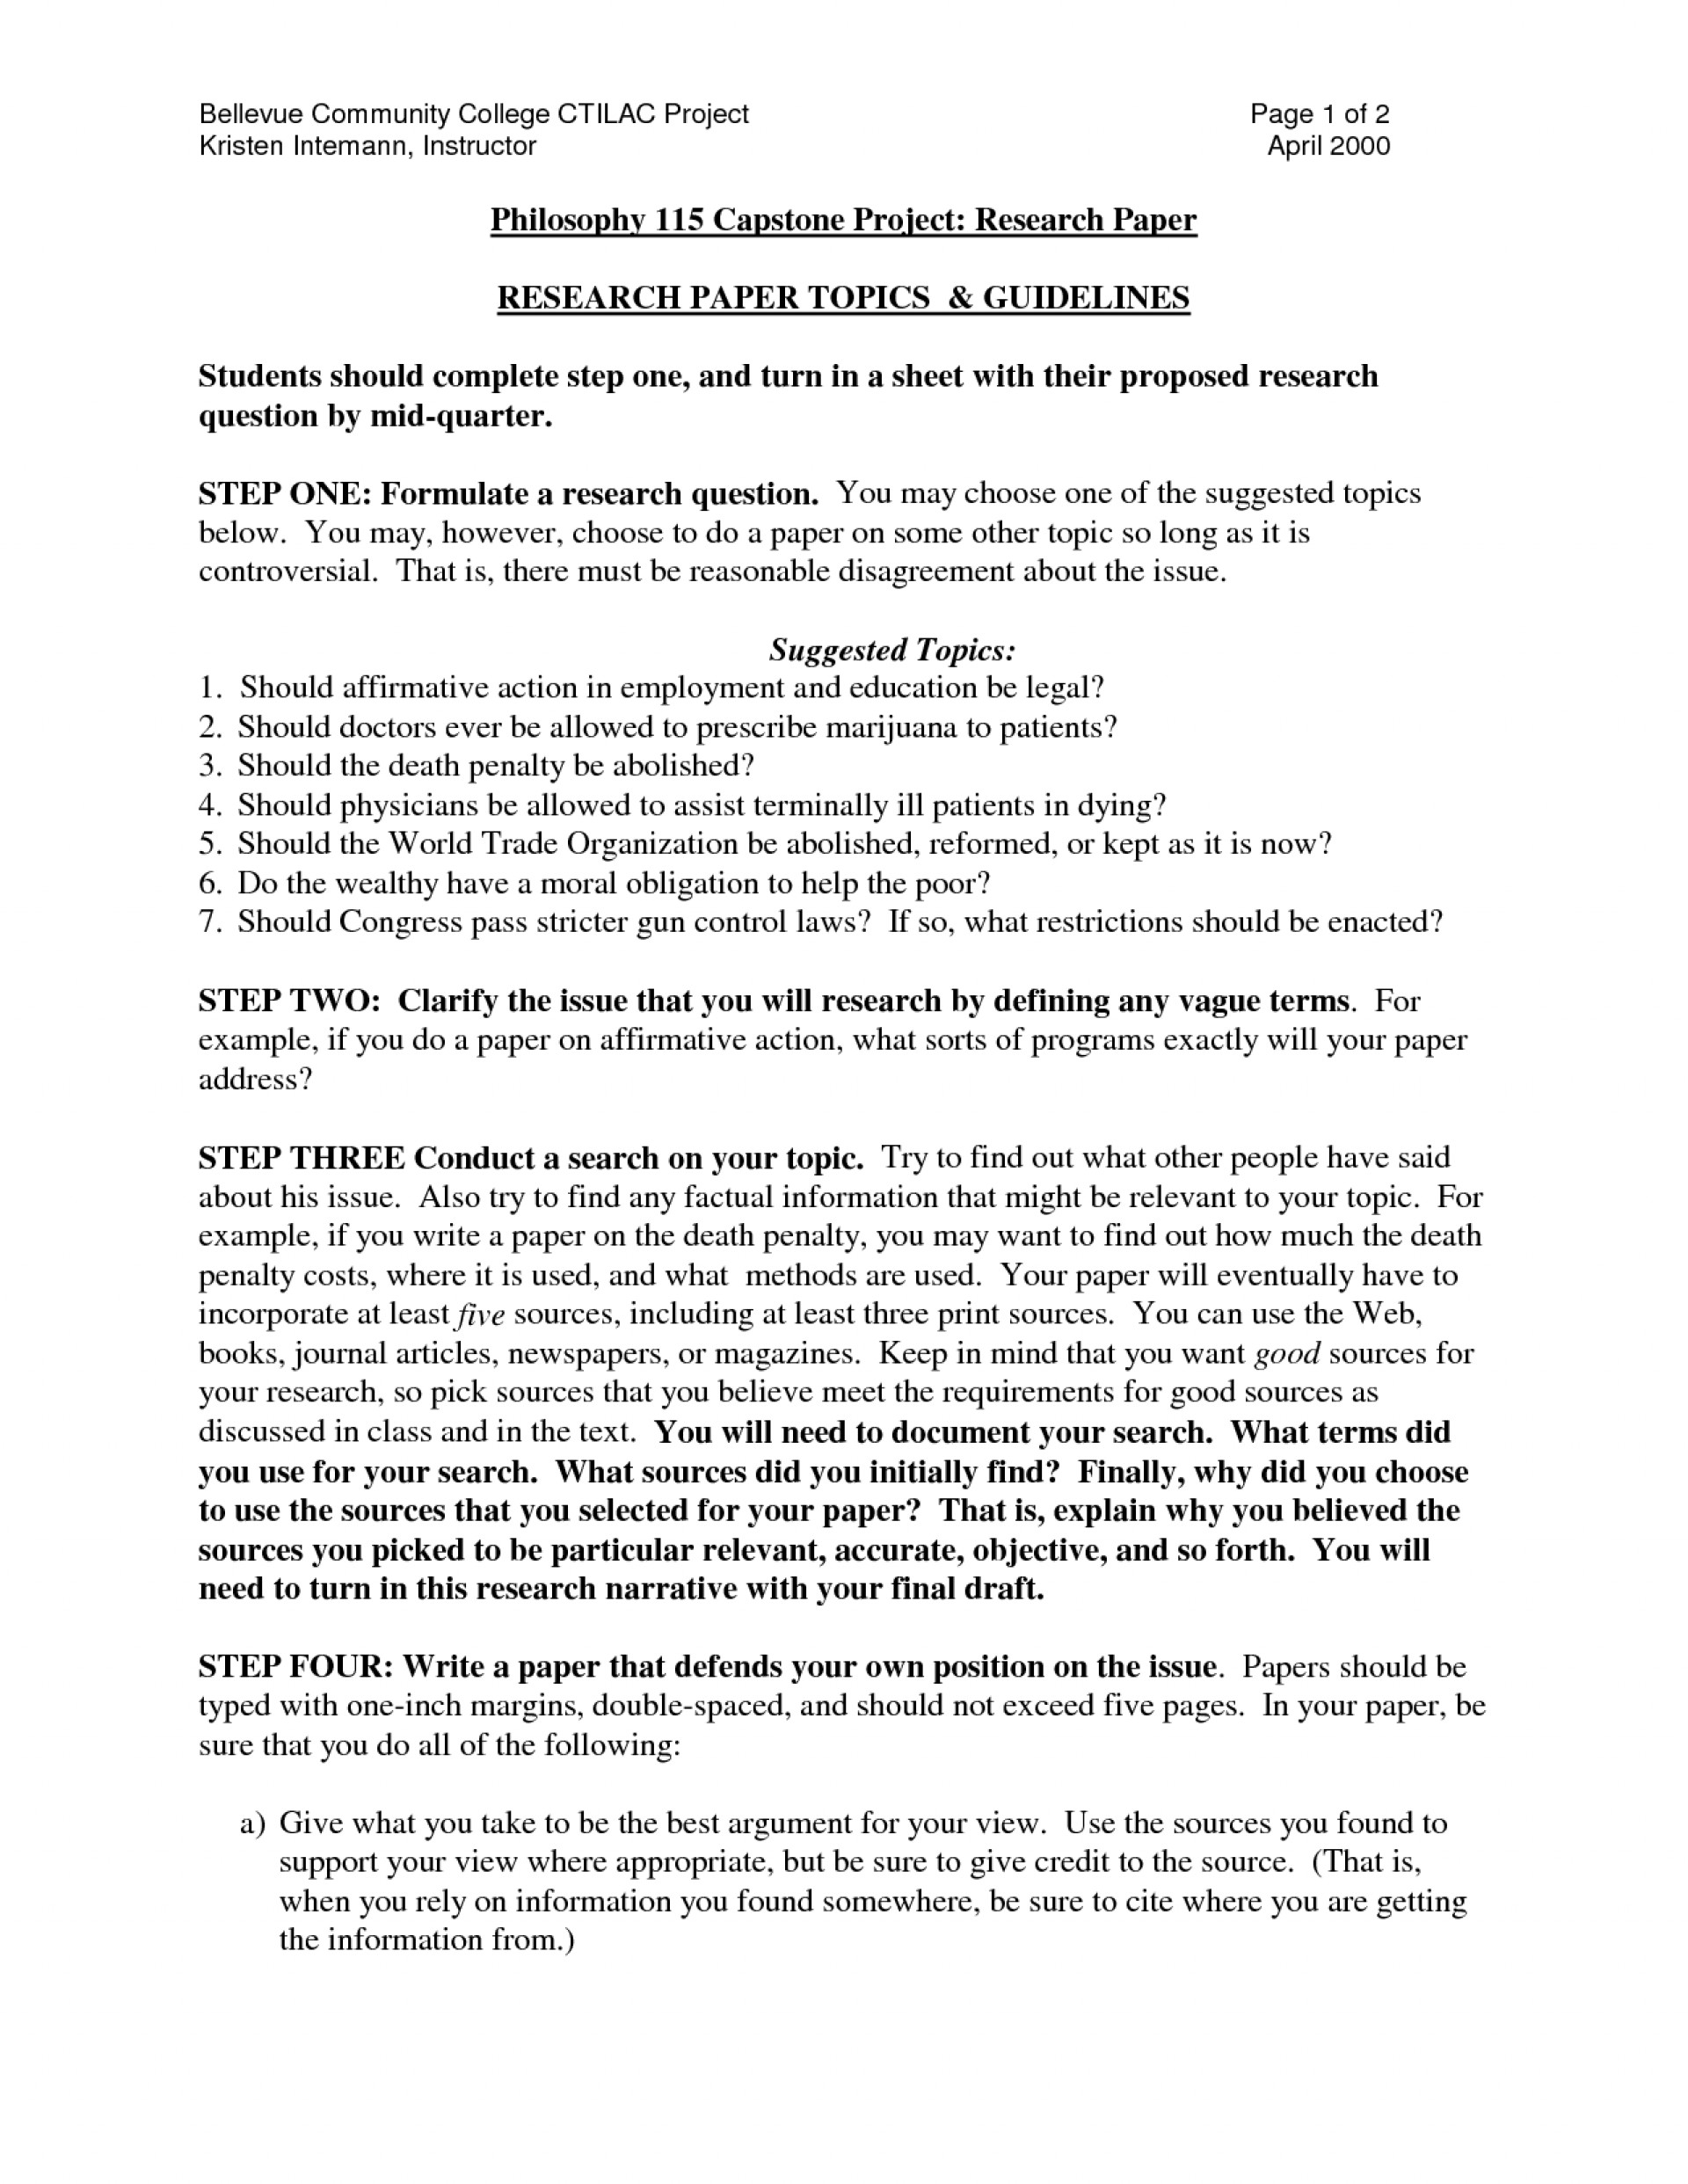 002 Research Paper Examples For College Impressive Sample In The Philippines Topics Students 1920